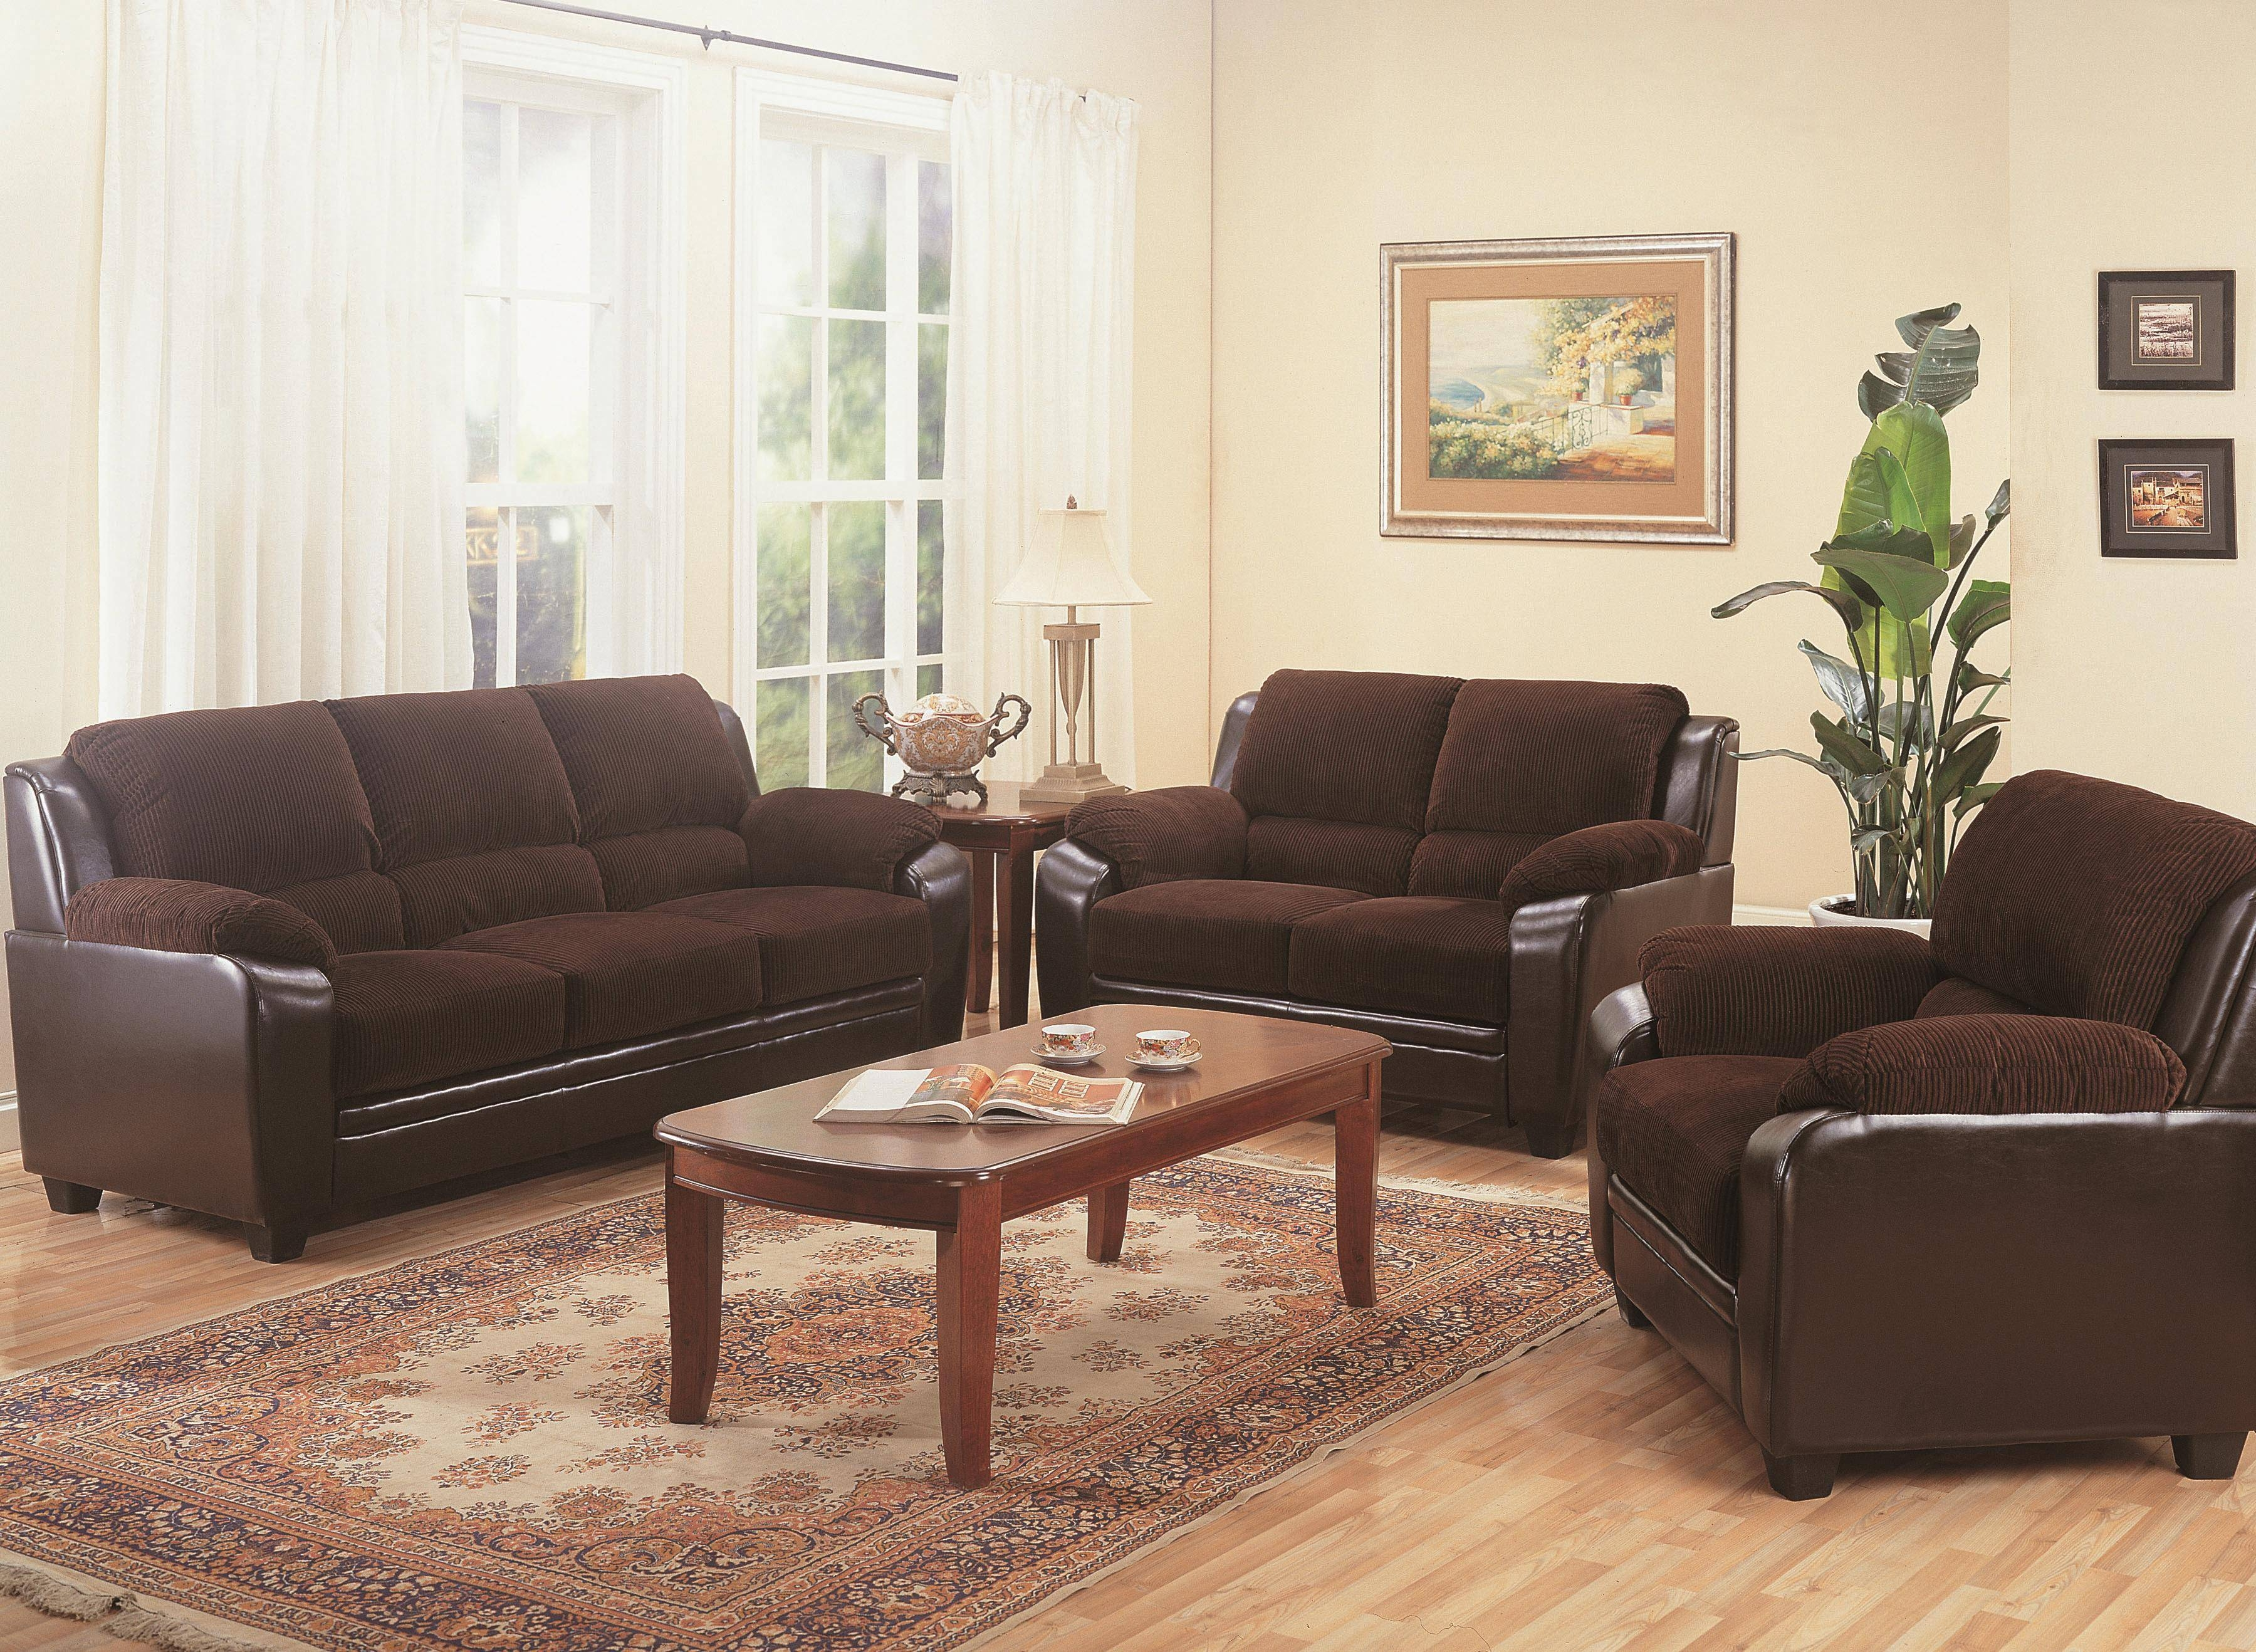 Coaster Monika Stationary Sofa With Wood Feet – Coaster Fine Furniture Within Casual Sofas And Chairs (View 9 of 15)